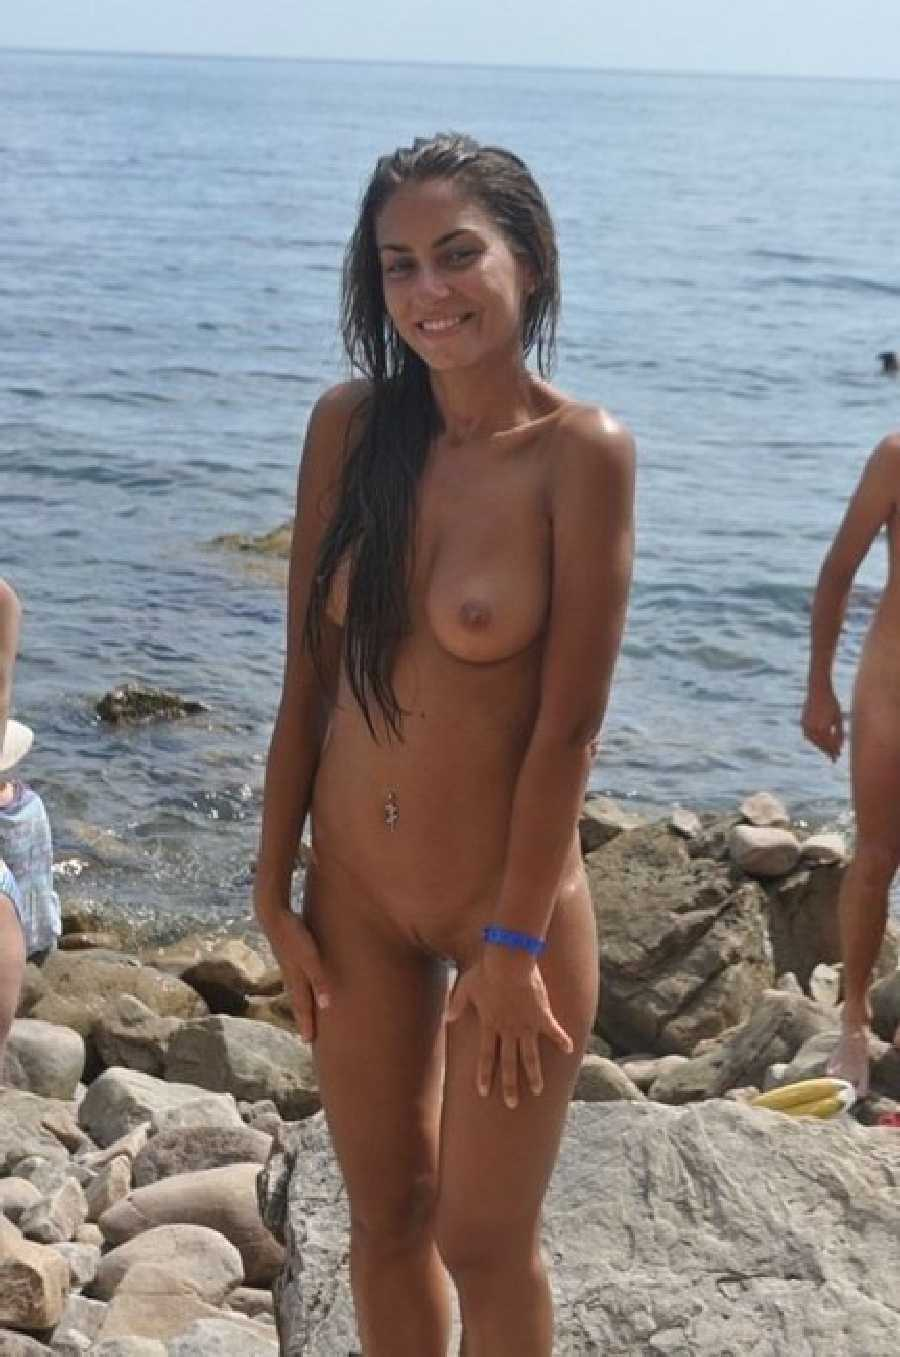 amateurs gone wild free videos